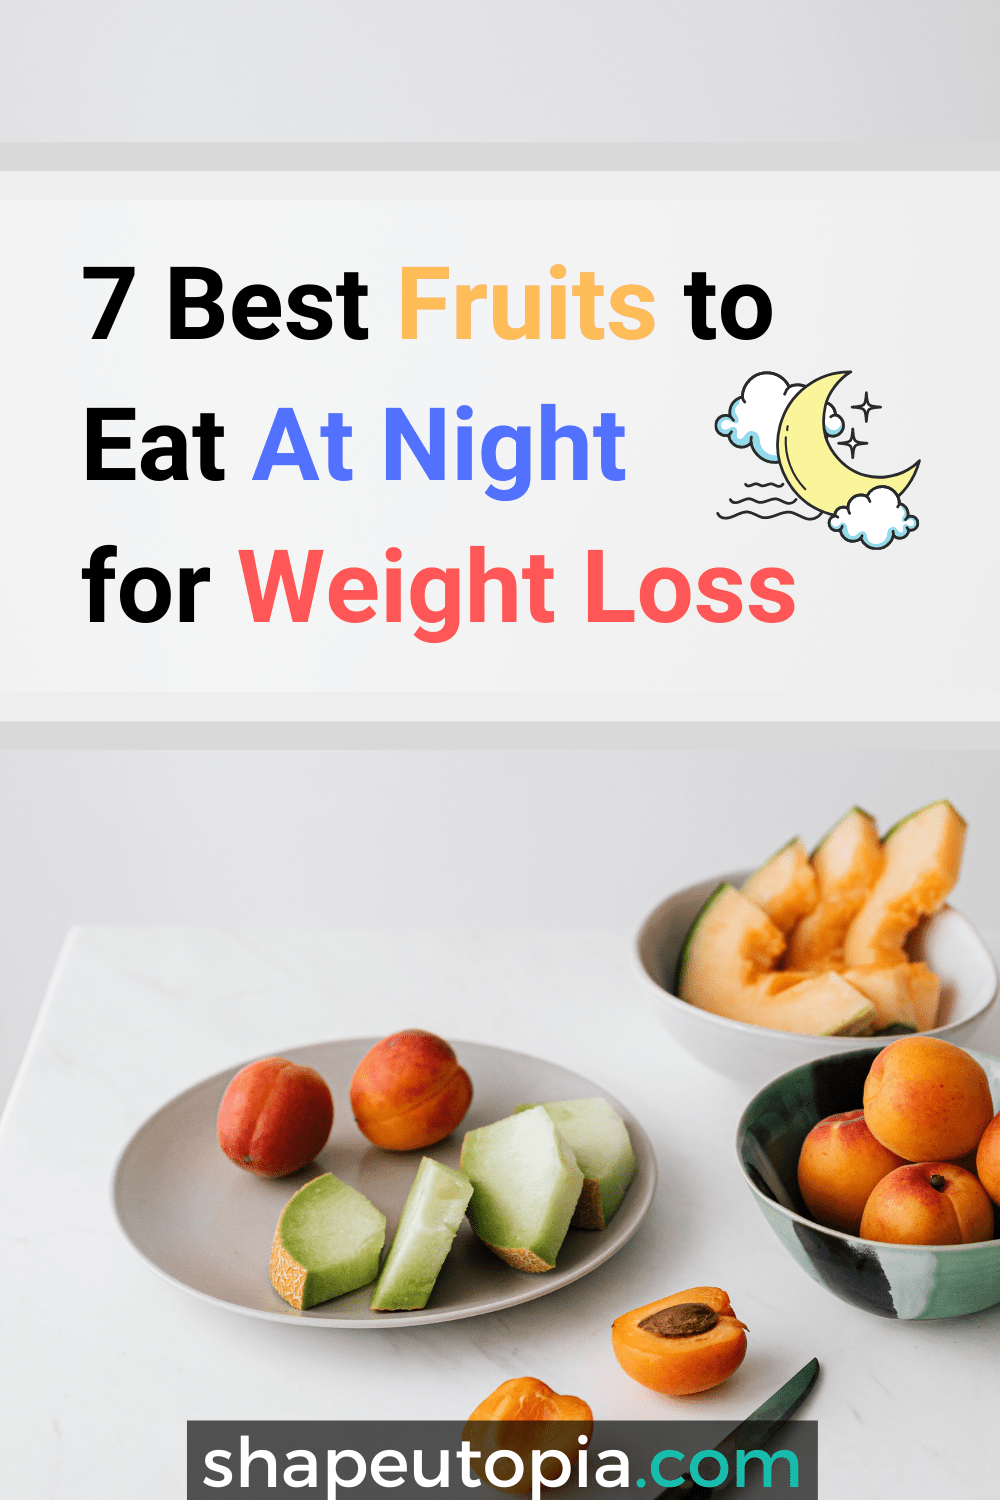 7 Best Fruits to Eat At Night for Weight Loss